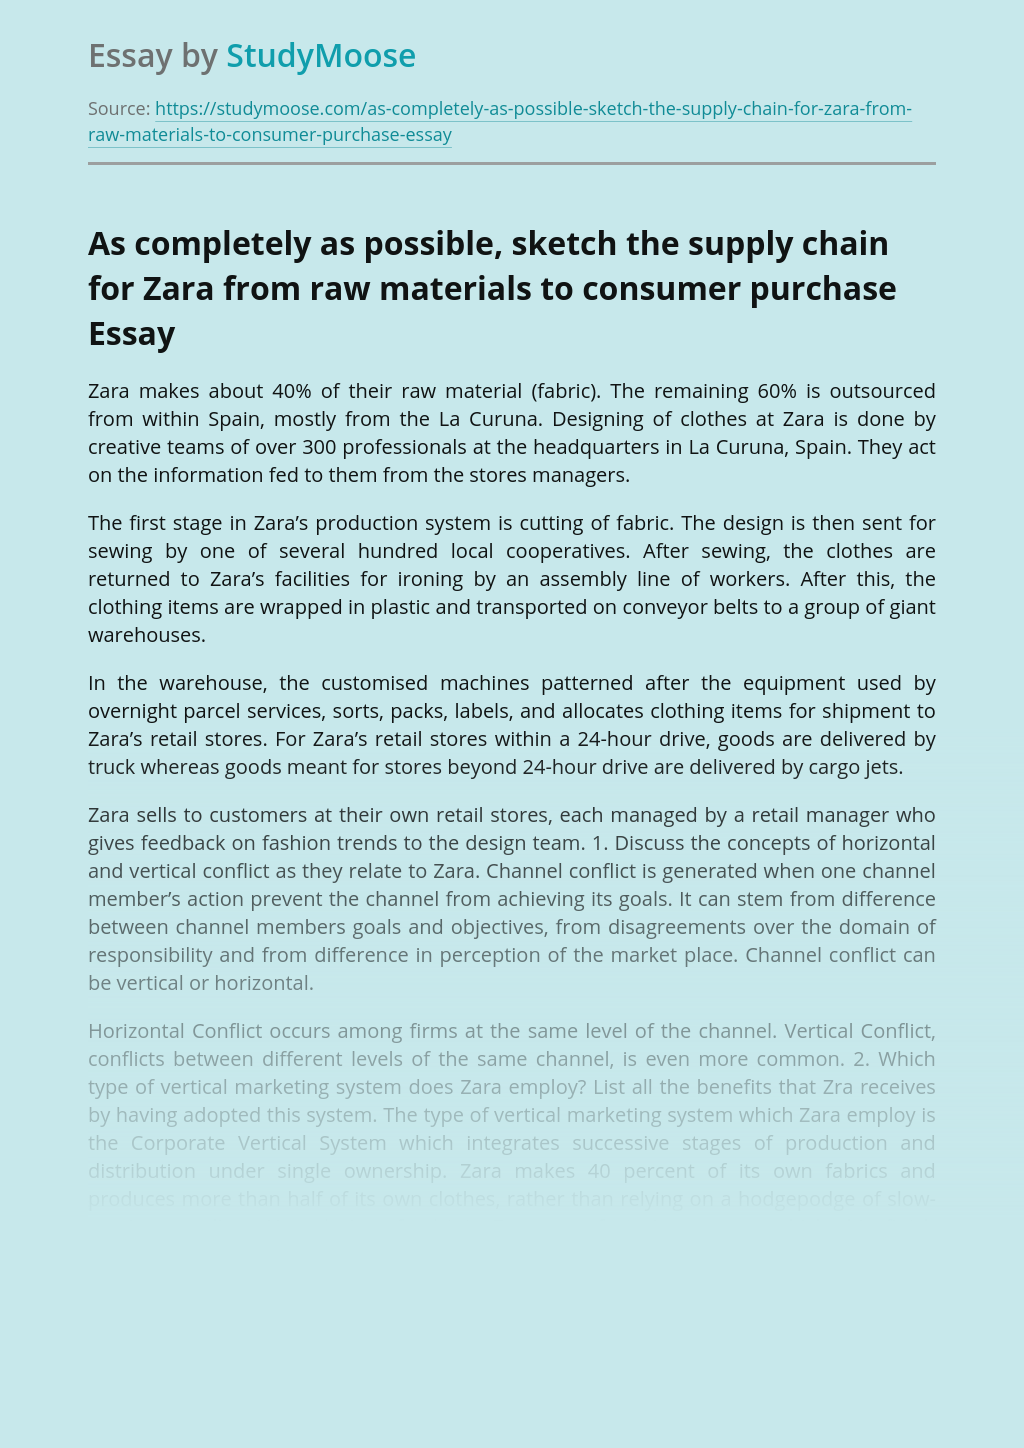 As completely as possible, sketch the supply chain for Zara from raw materials to consumer purchase